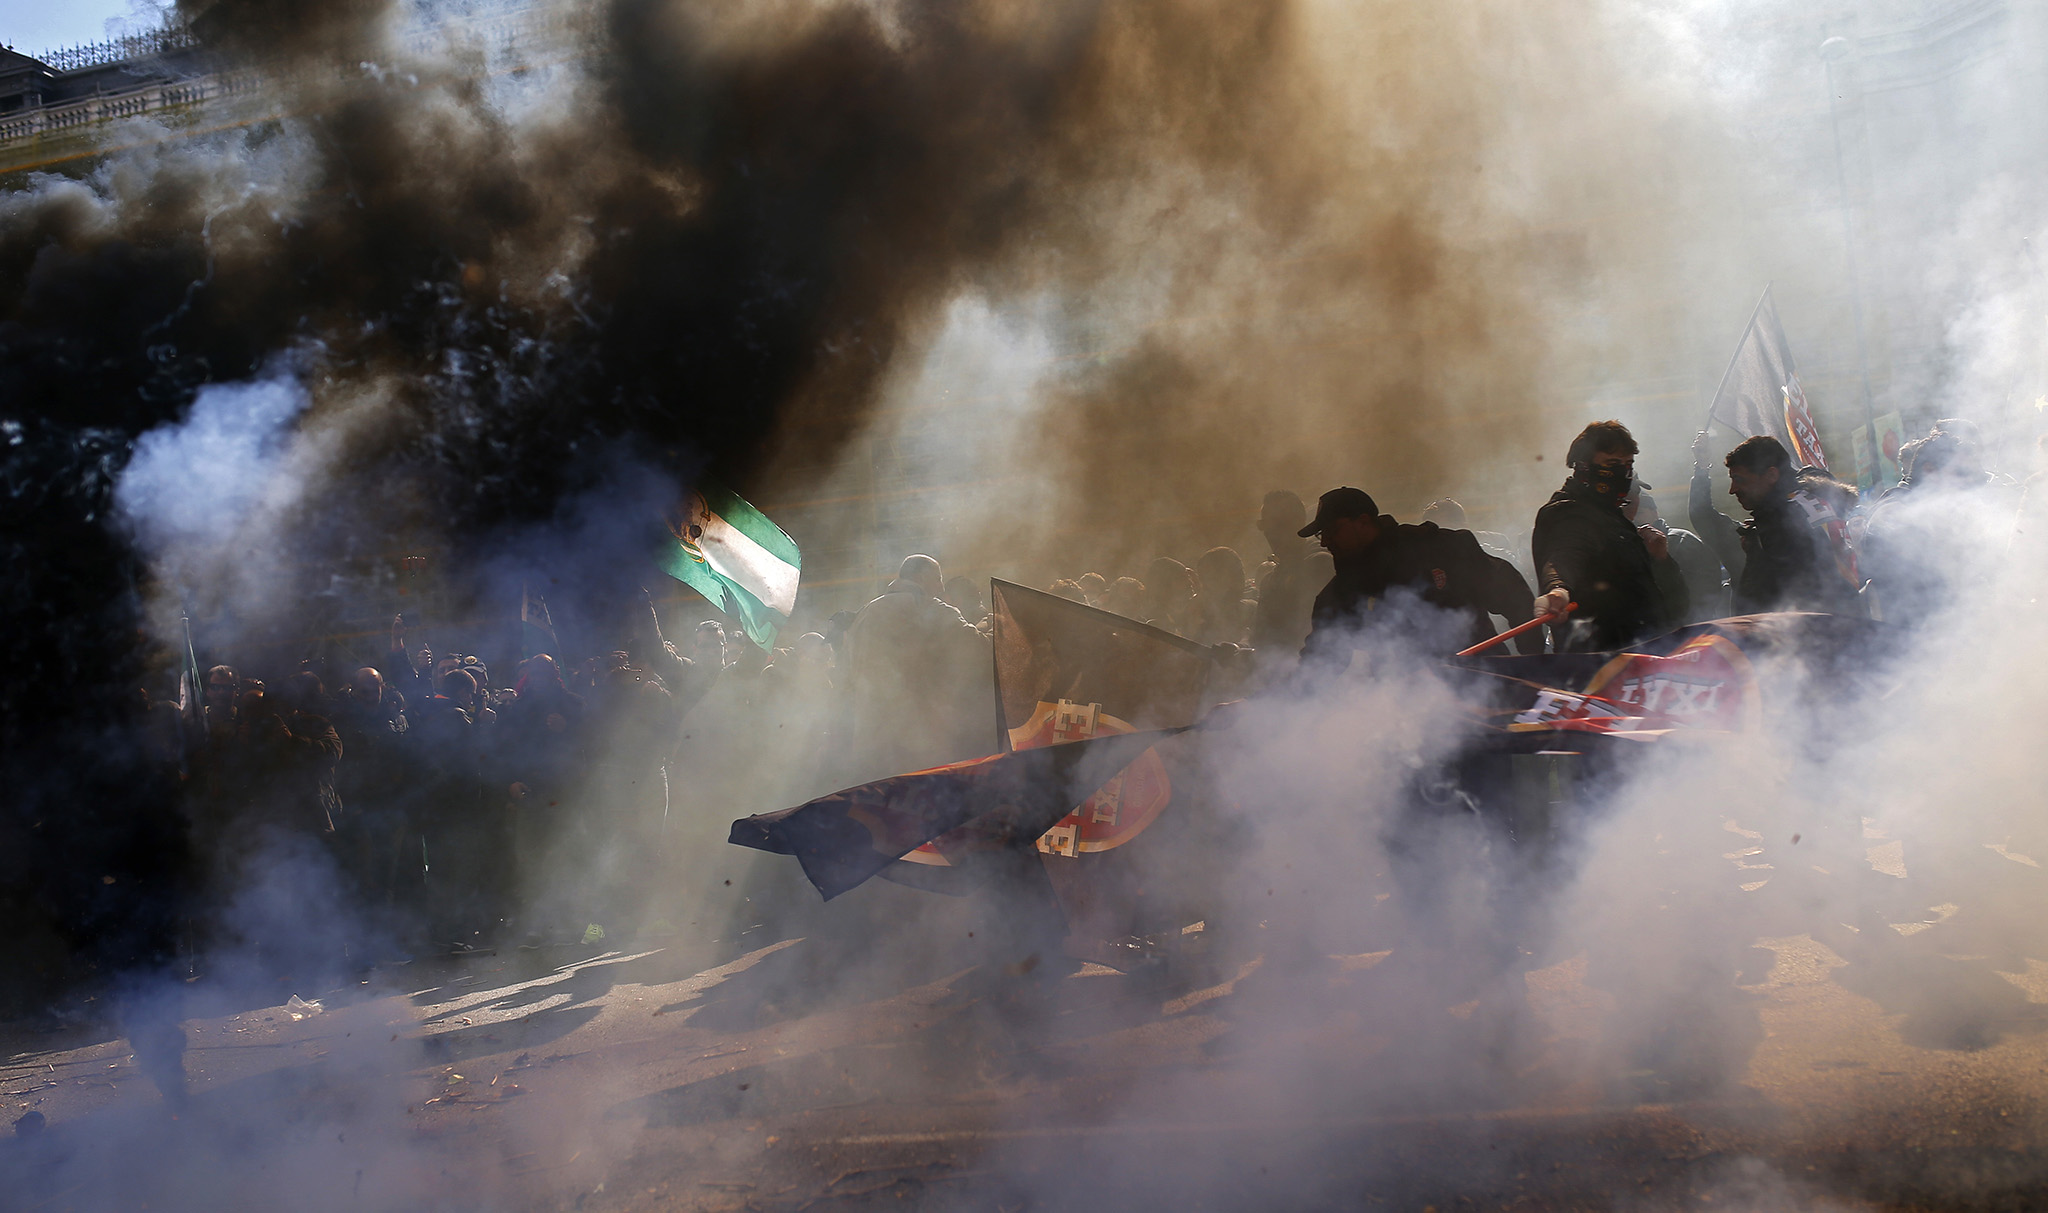 People surrounded by smoke wave flags and shout slogans during a protest by a Spanish taxi drivers' union in Madrid